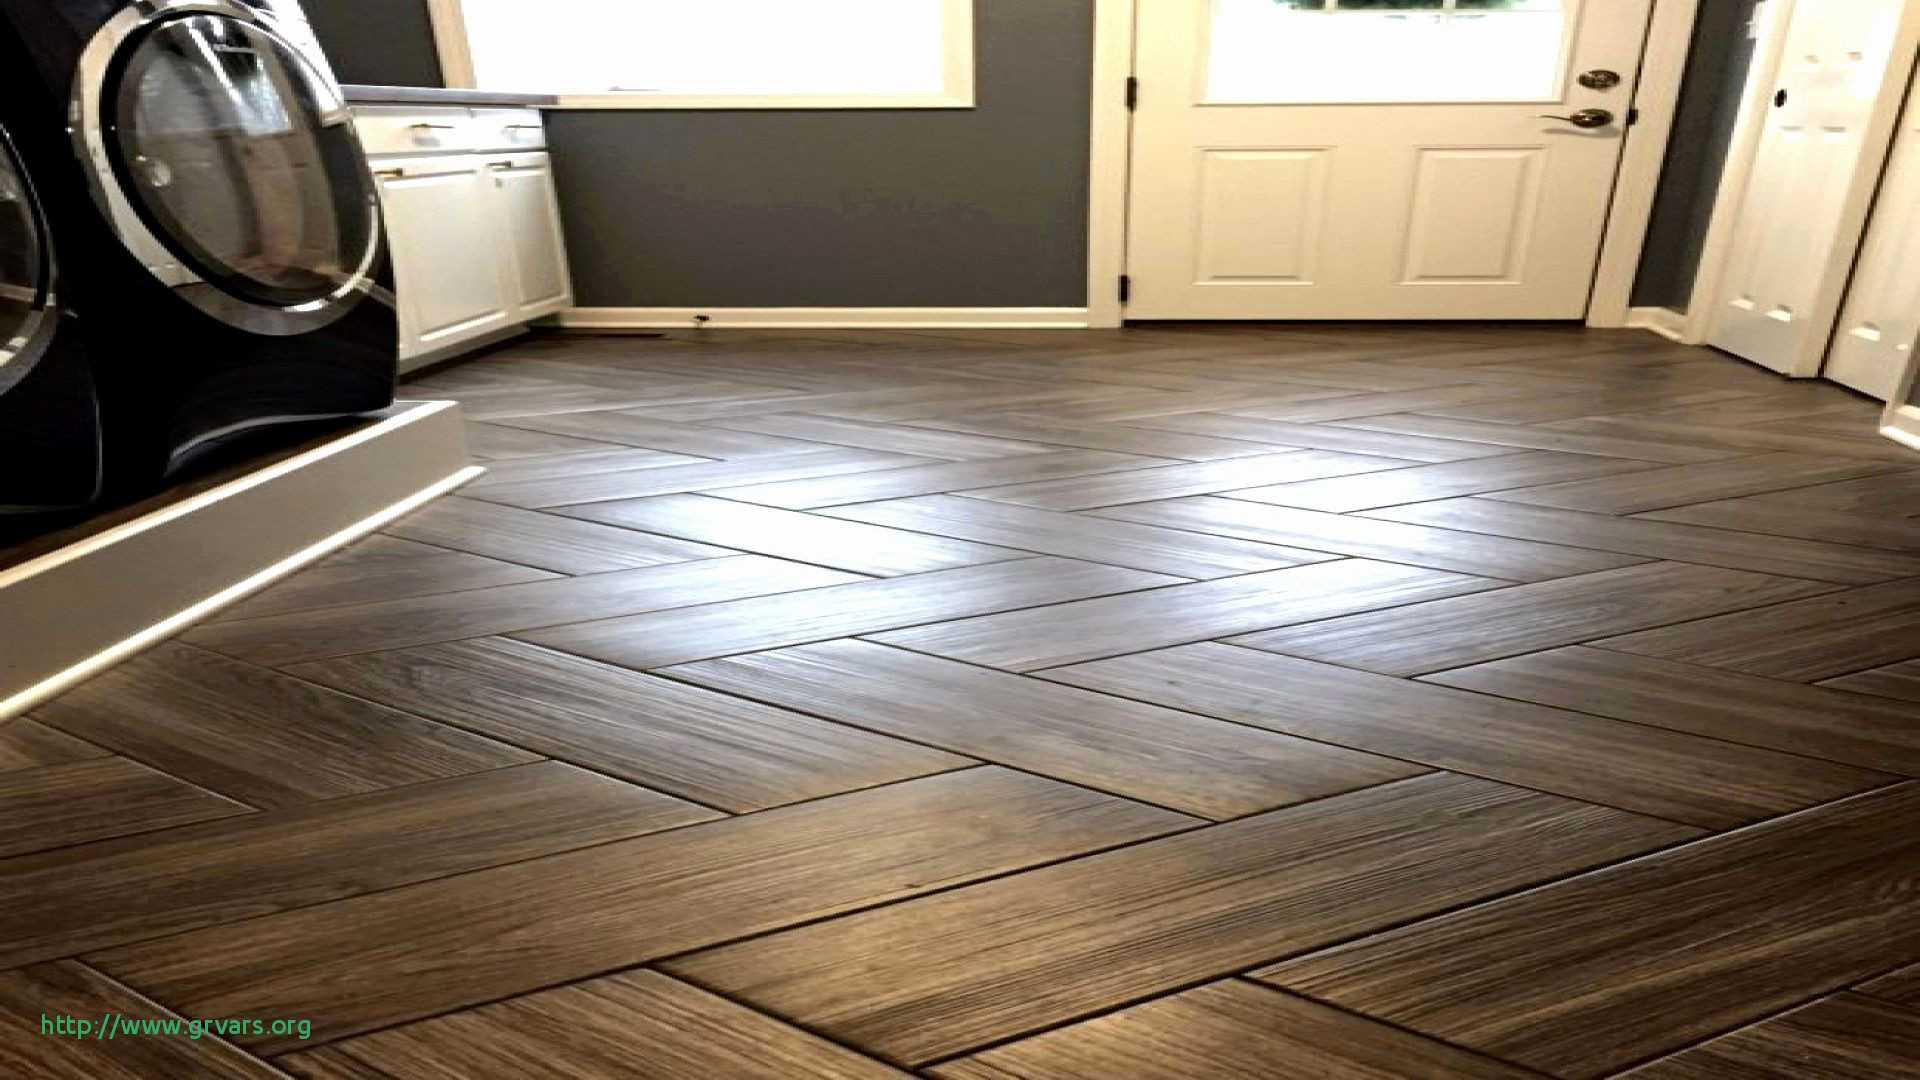 3 4 bamboo hardwood flooring of 21 frais multi colored bamboo flooring ideas blog with kitchen floor tiles home depot elegant s media cache ak0 pinimg 736x 43 0d 97 best